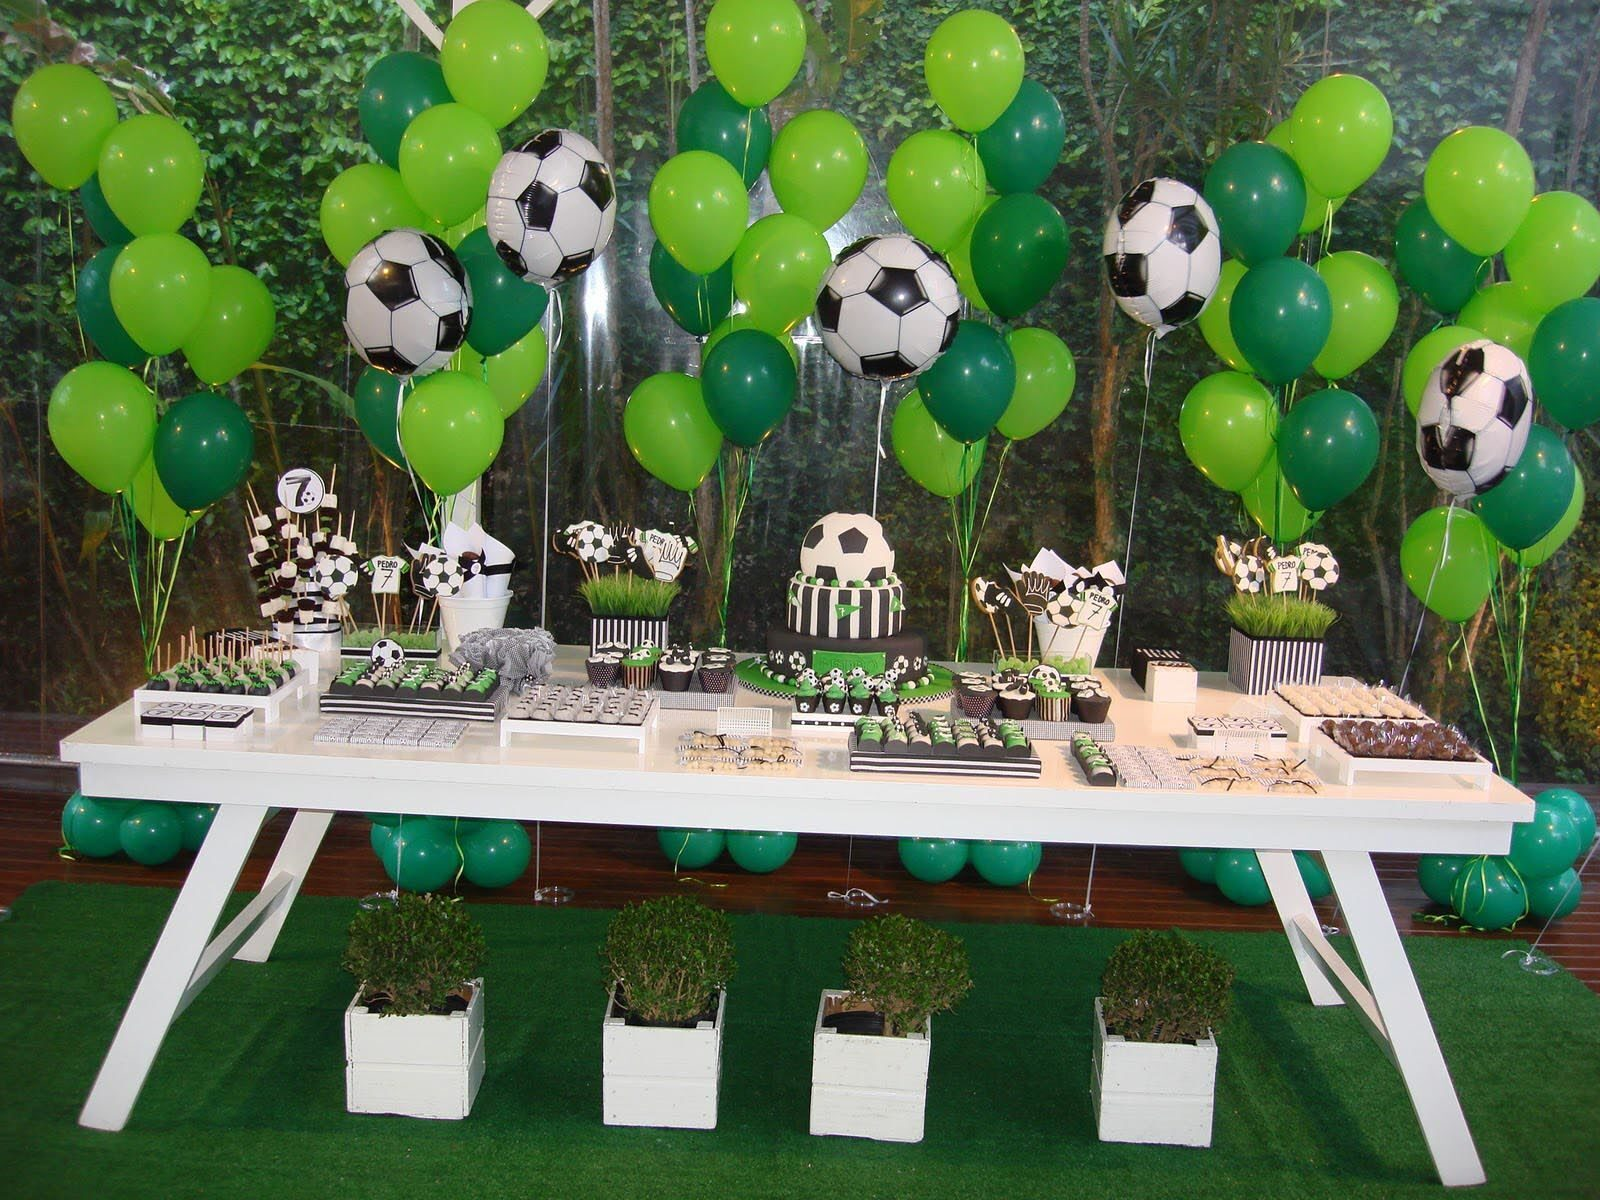 soccer-birthday-party-favor-ideas